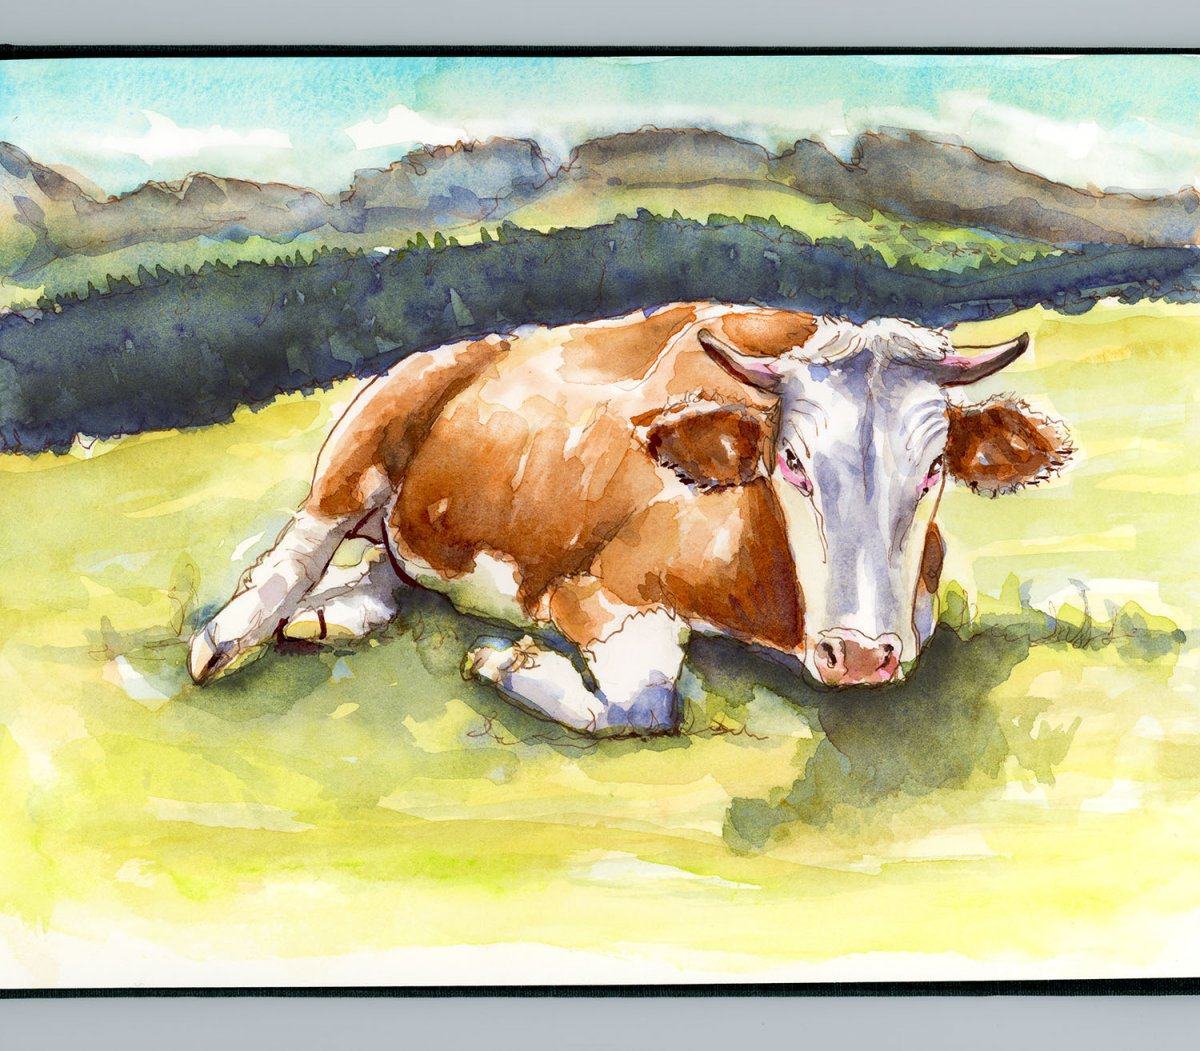 Day 10 - Like A Cow In The Field Watercolor Landscape - Doodlewash